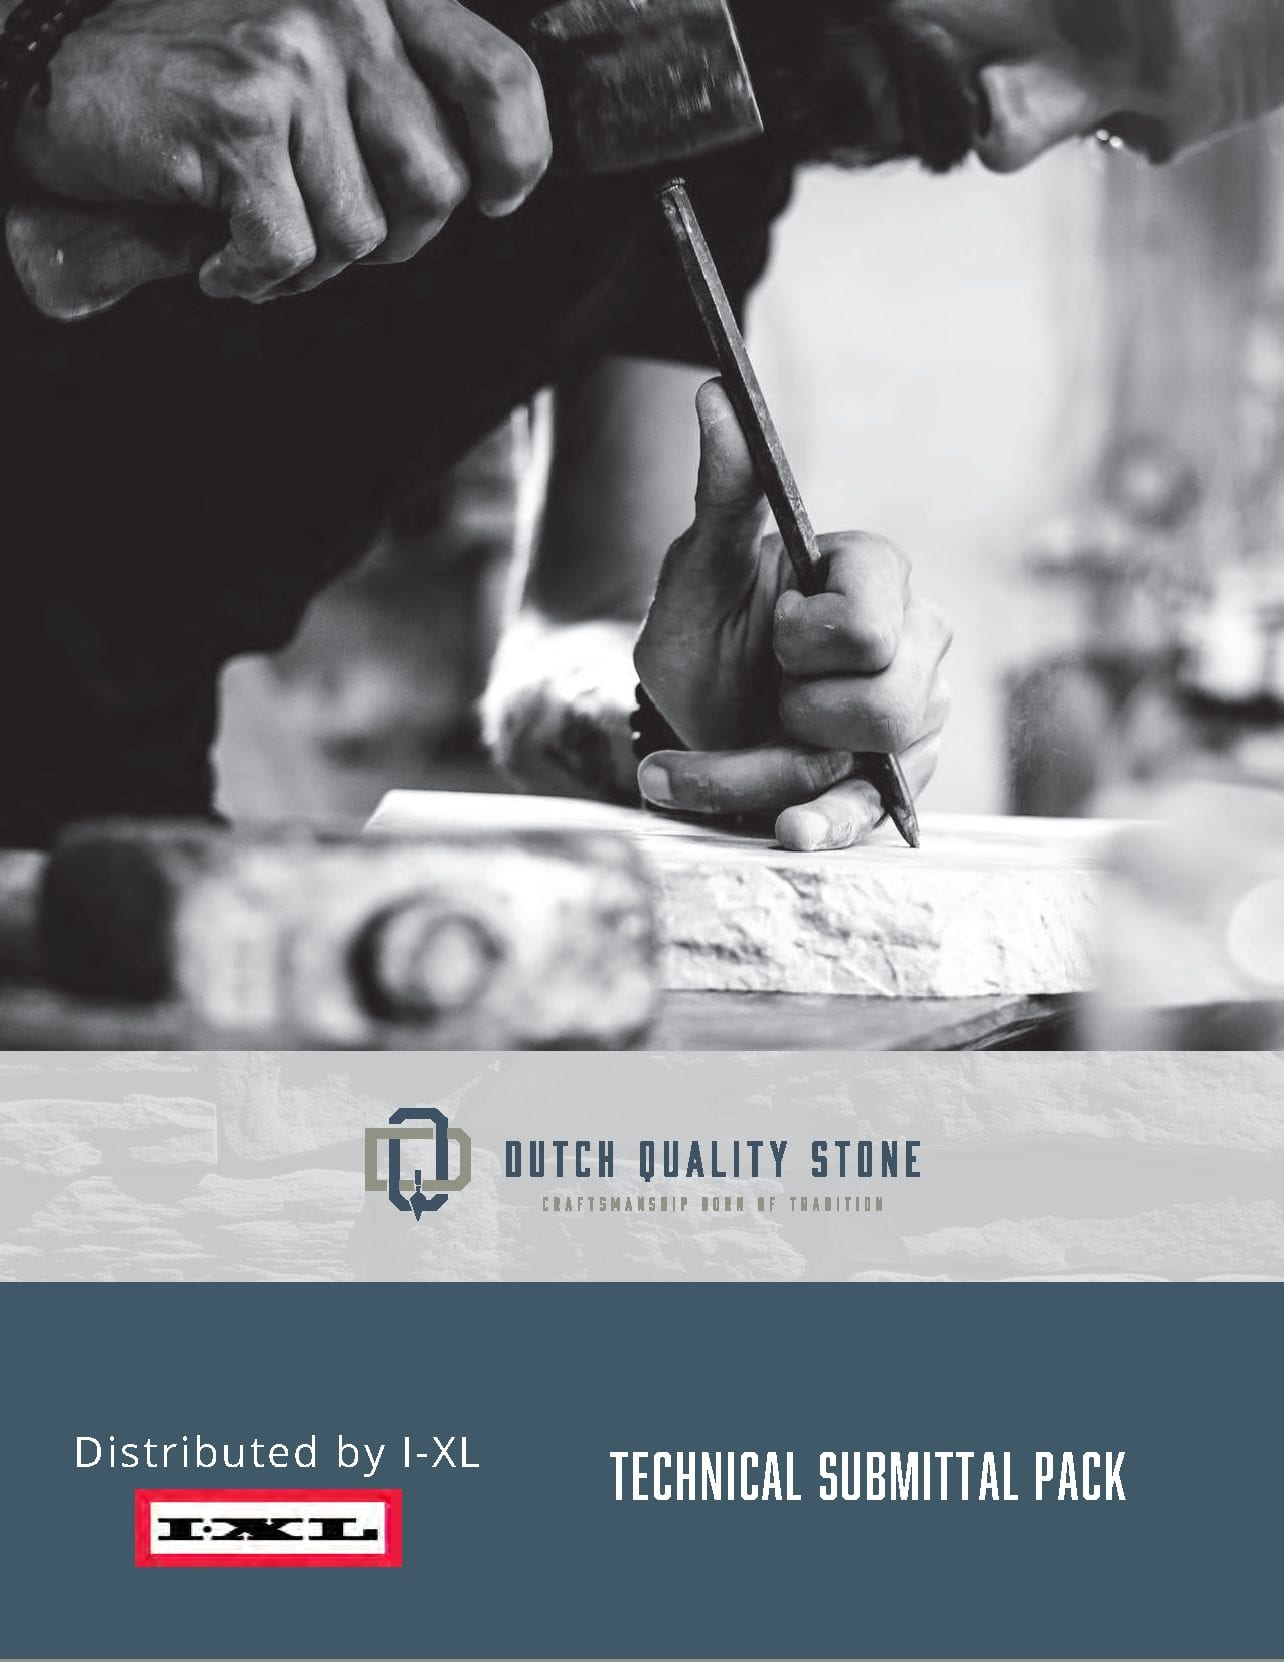 Dutch Quality Stone Technical Submittal Packet